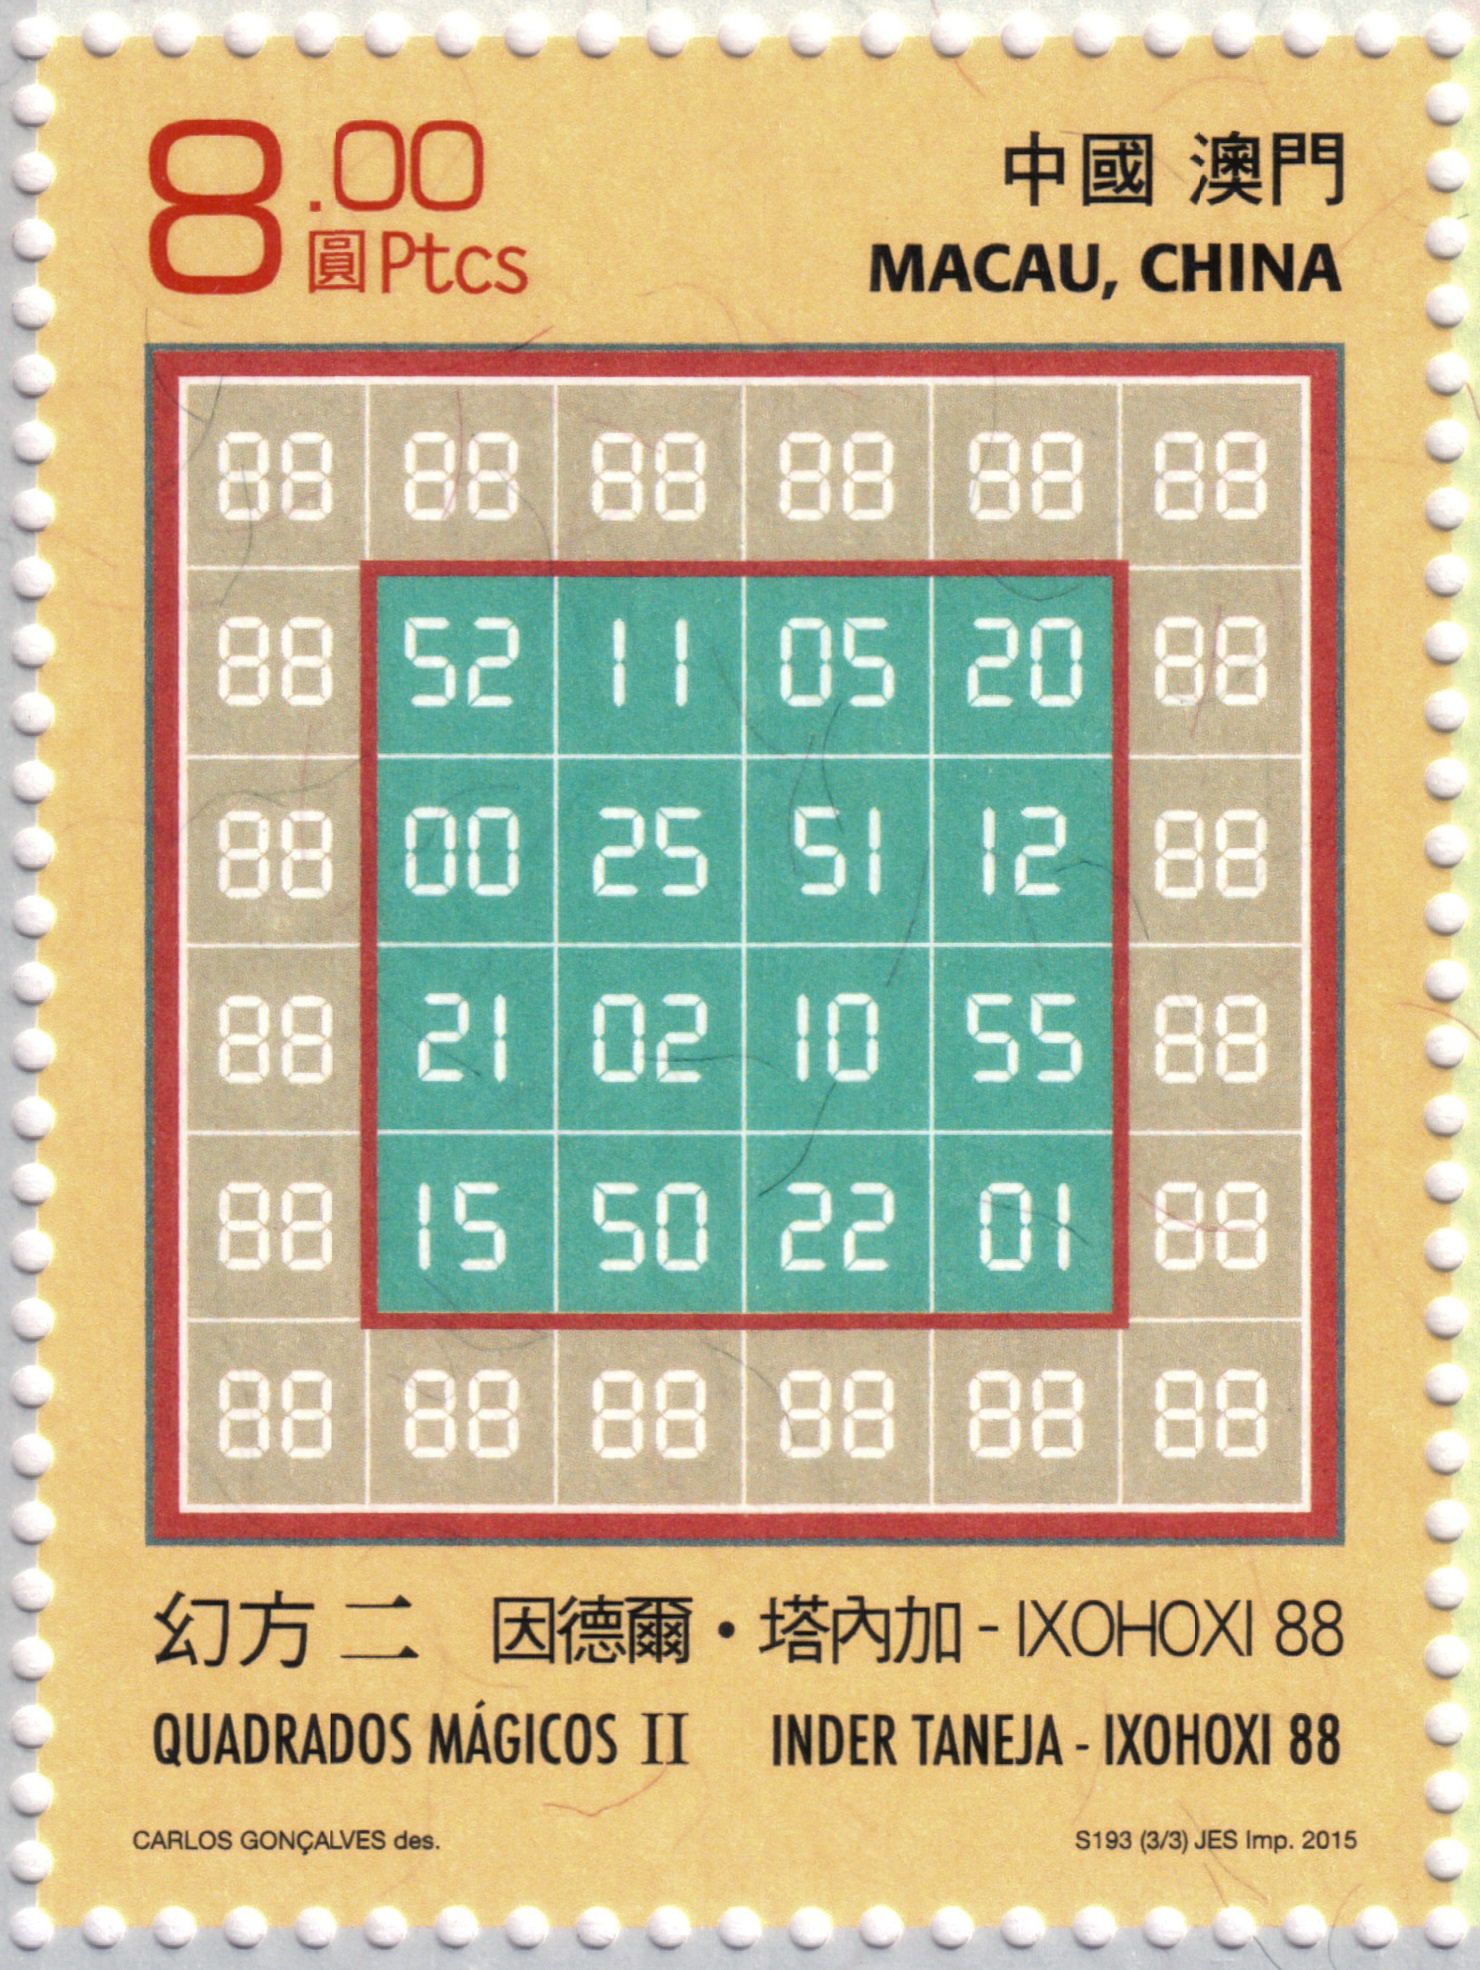 IXOHOXI magic square